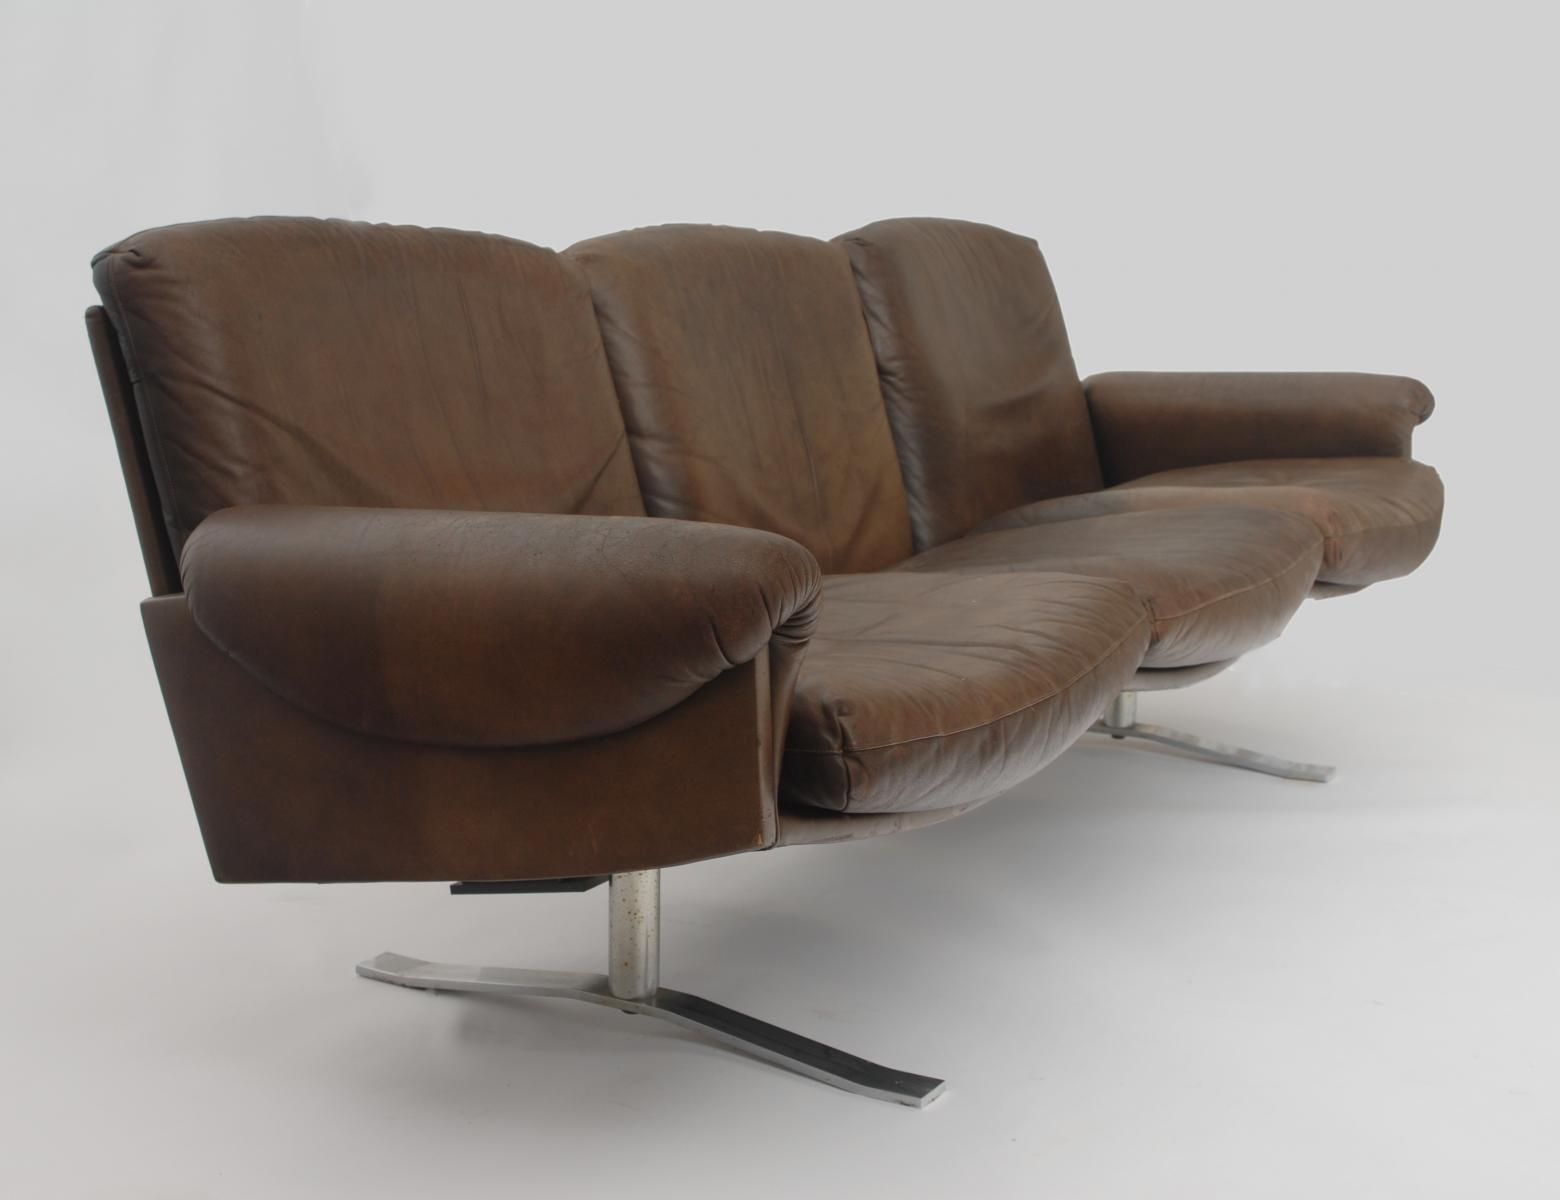 Mid Century German 3 Seater Leather Sofa For Sale At Pamono With 3 Seater Leather Sofas (Image 8 of 20)